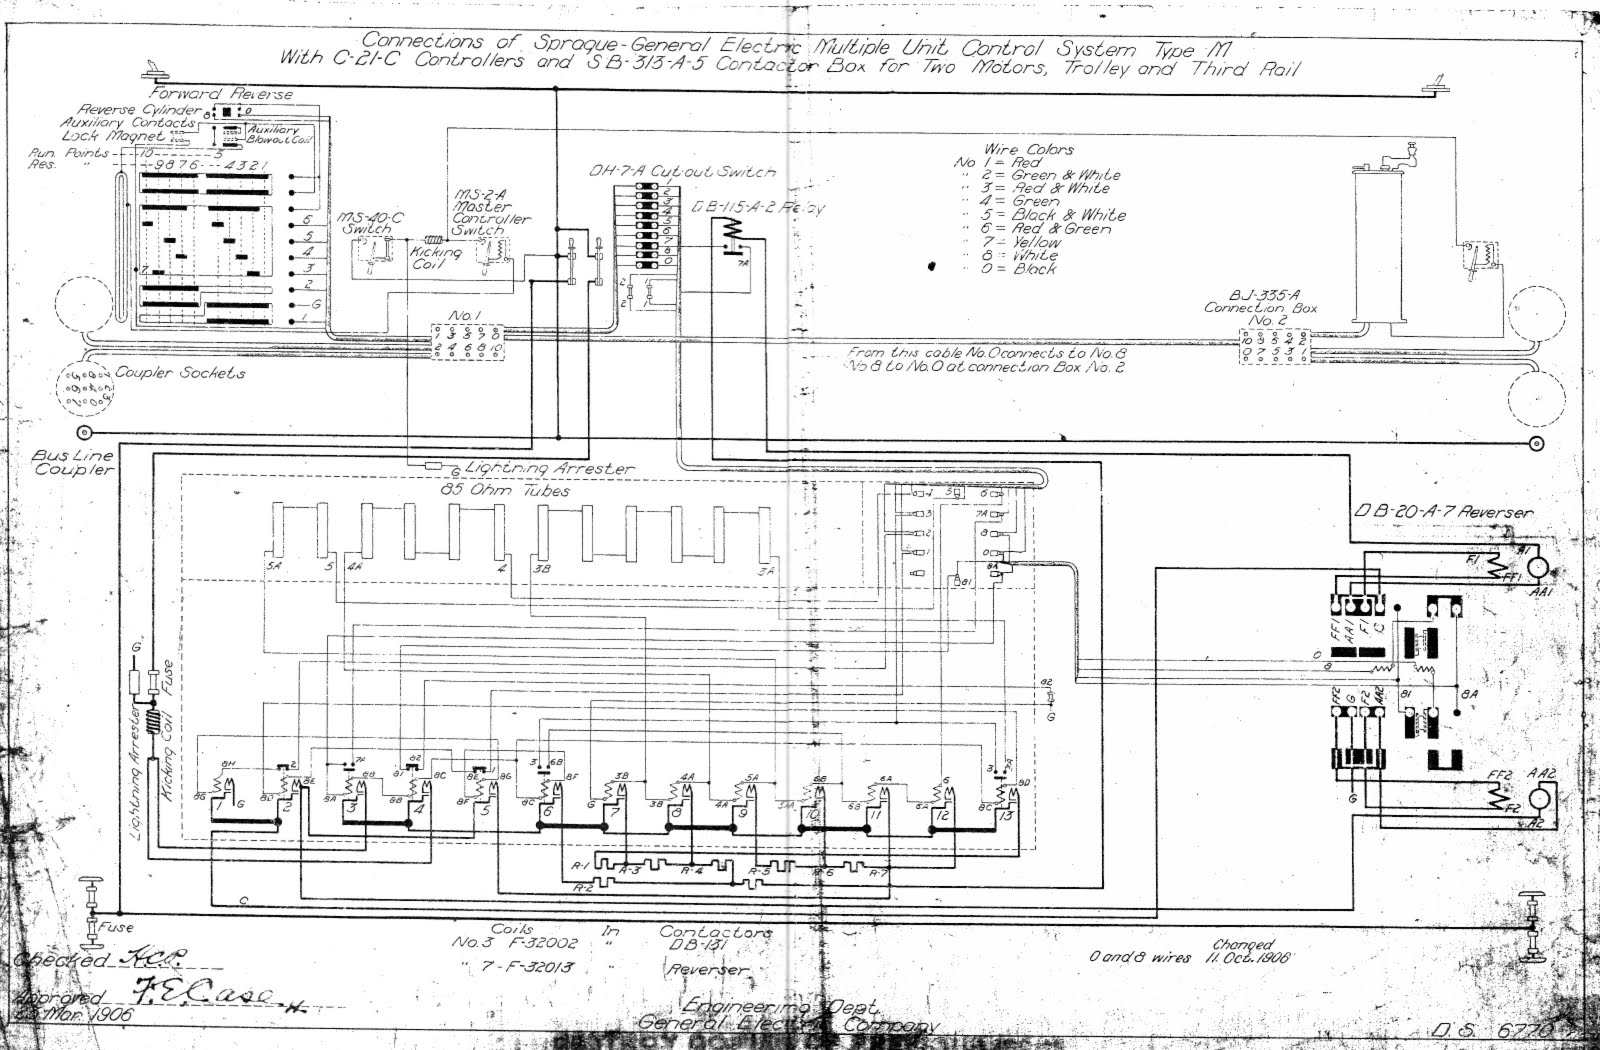 1956 chevy pickup wiring diagram with Control Circuit Diagrams on Frontaxle further 1955 Chrysler Wiring Diagram also Yamaha Outboard Trim Gauge Wiring besides 1979 Corvette Tach Filter Picture likewise 936701 Voltage Regulator Problems.